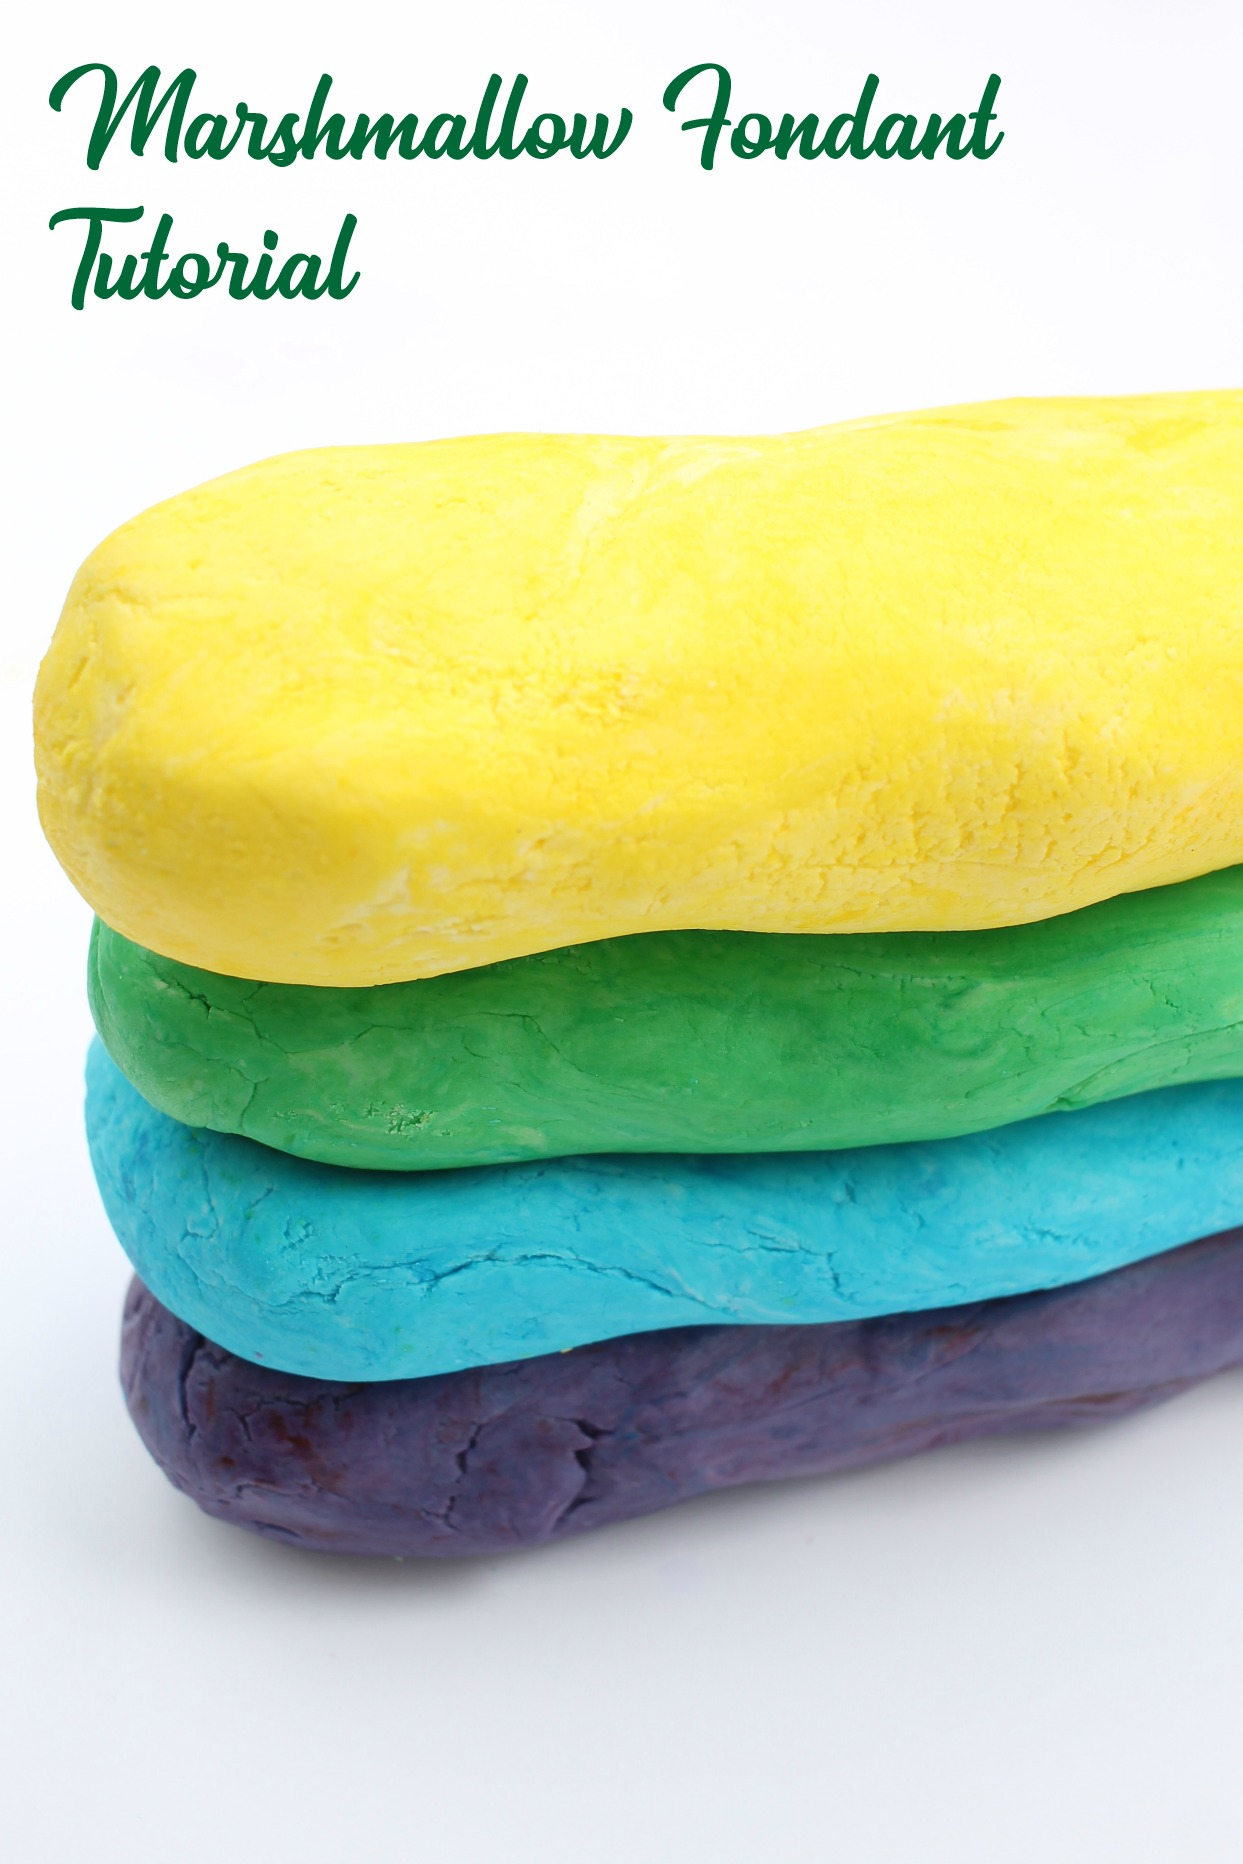 marshmallow fondant in 4 colors stacked on top of each other